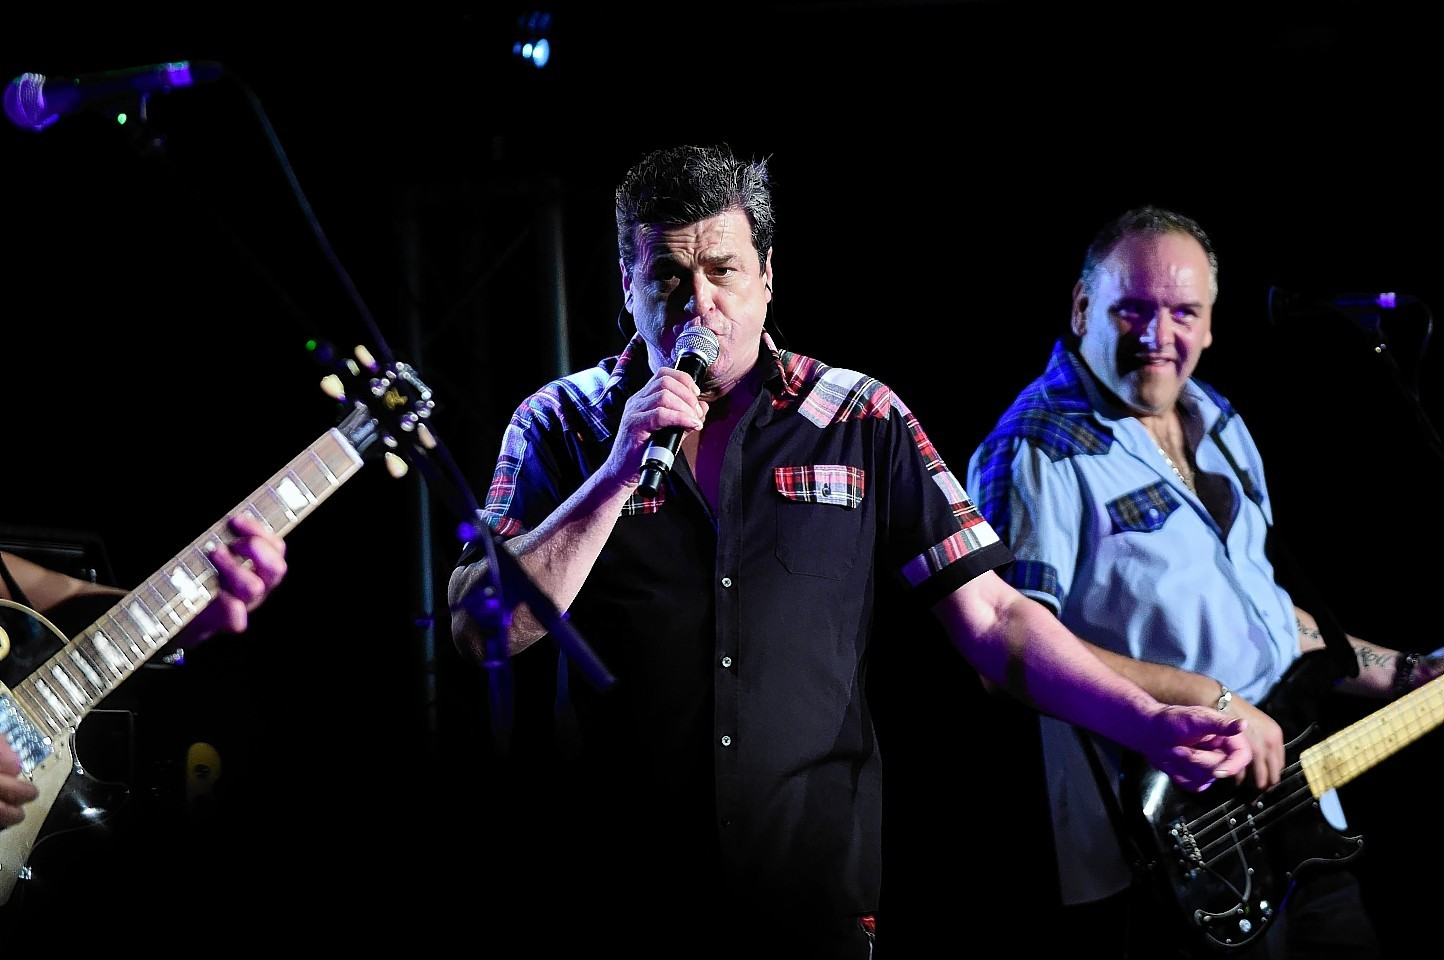 Les McKeown and his Bay City Rollers entertained a large crowd at Fraserburgh Leisure Centre